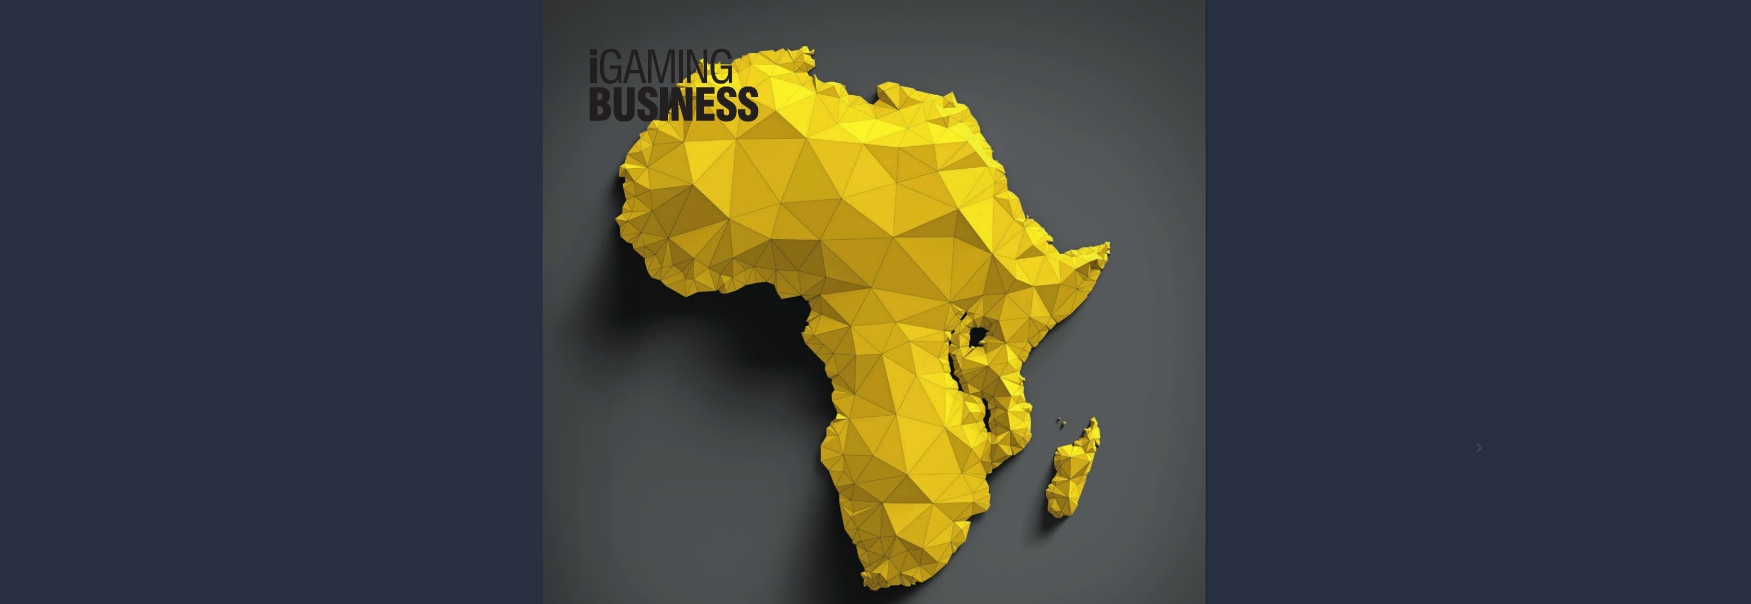 iGaming Business -  Africa Focus 2017